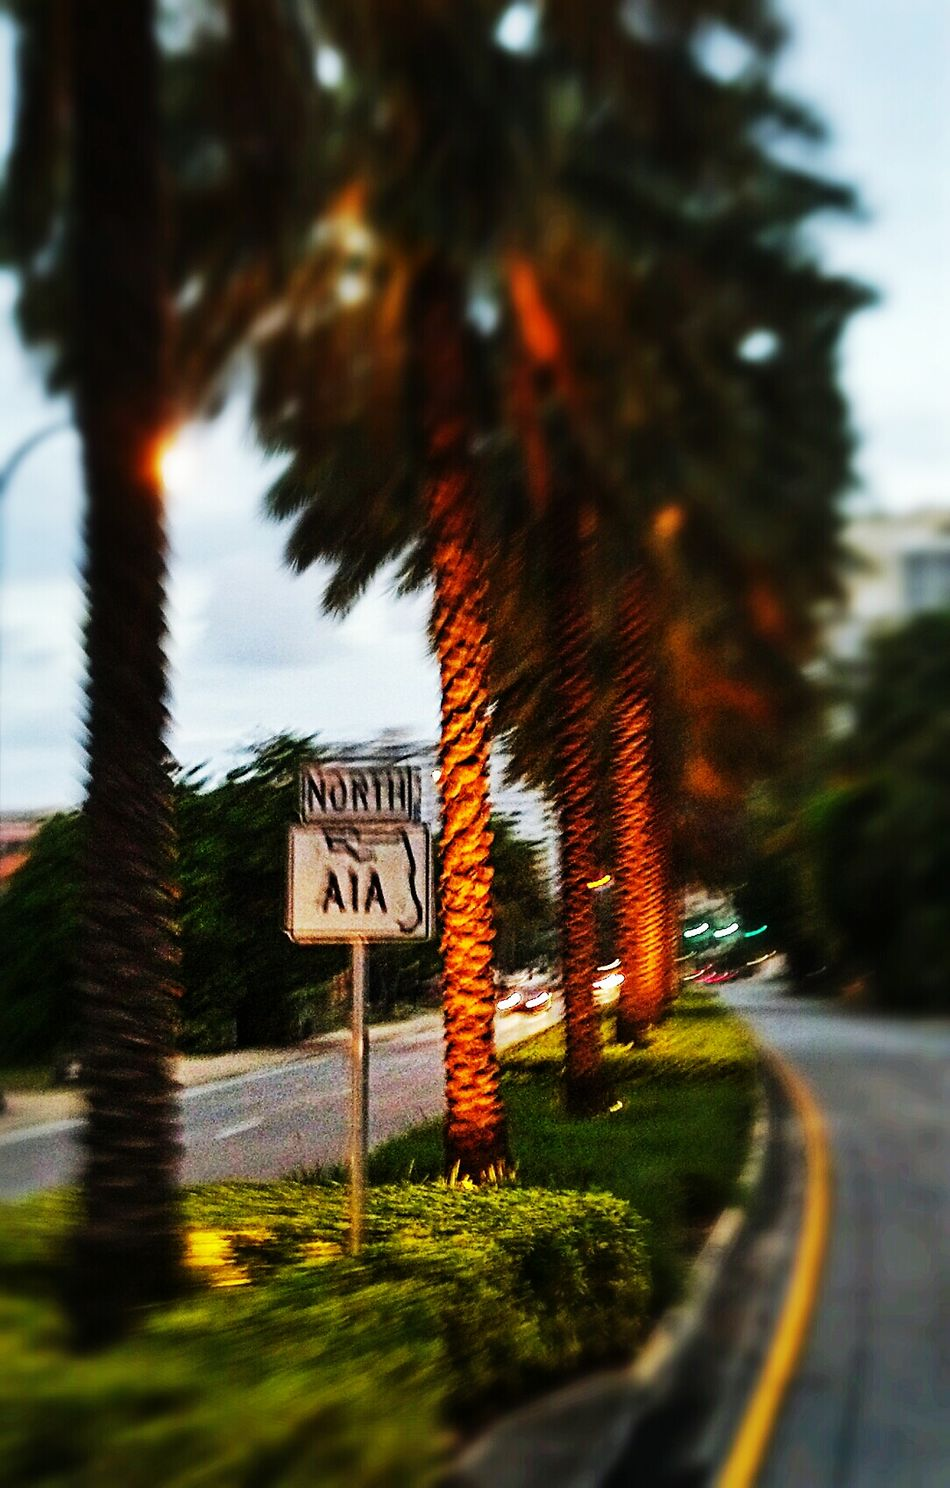 Transportation Blurred Motion Road Sign Motion Travel Road A1A No People Vacation Spot Beach Road Scenic Drive Nature Day Outdoors Sky Text Tree Excitement Florida Beaches Tree Transportation No People Road Sign Art Is Everywhere